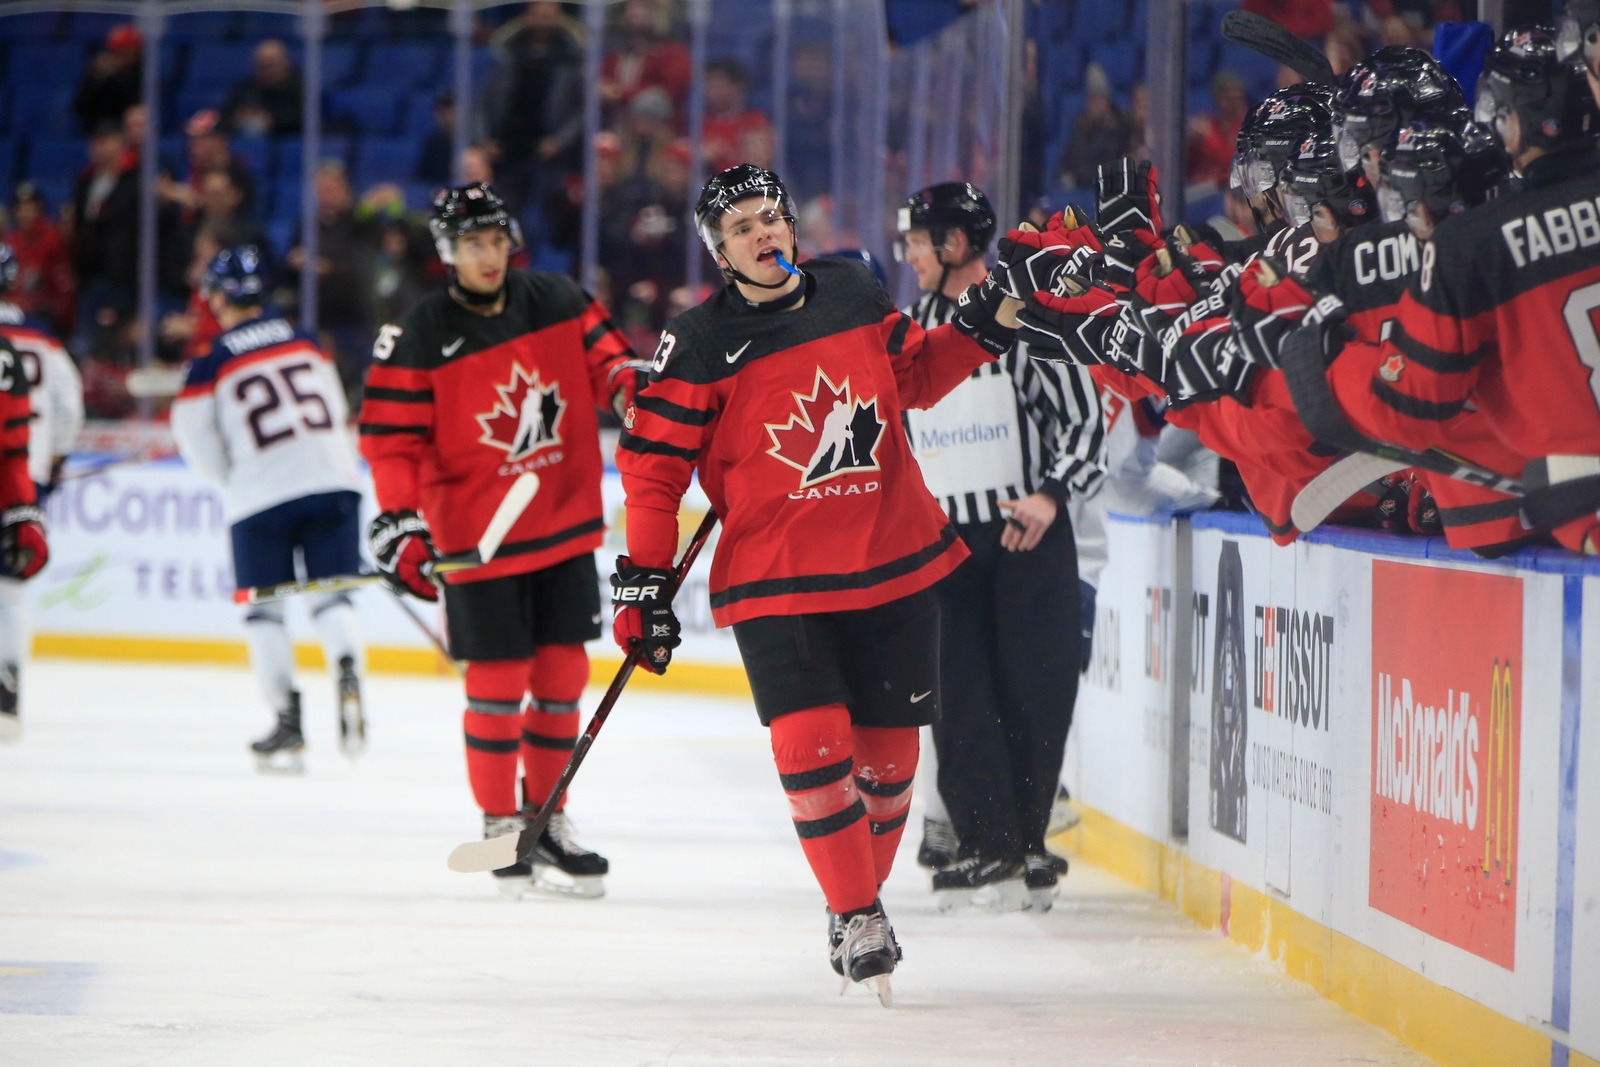 Team Canada forward Sam Steele celebrates his goal with the bench against Slovakia during the first period of their World Junior Hockey  Championship preliminary-round contest on Wednesday, Dec. 27, 2017, at KeyBank Center.